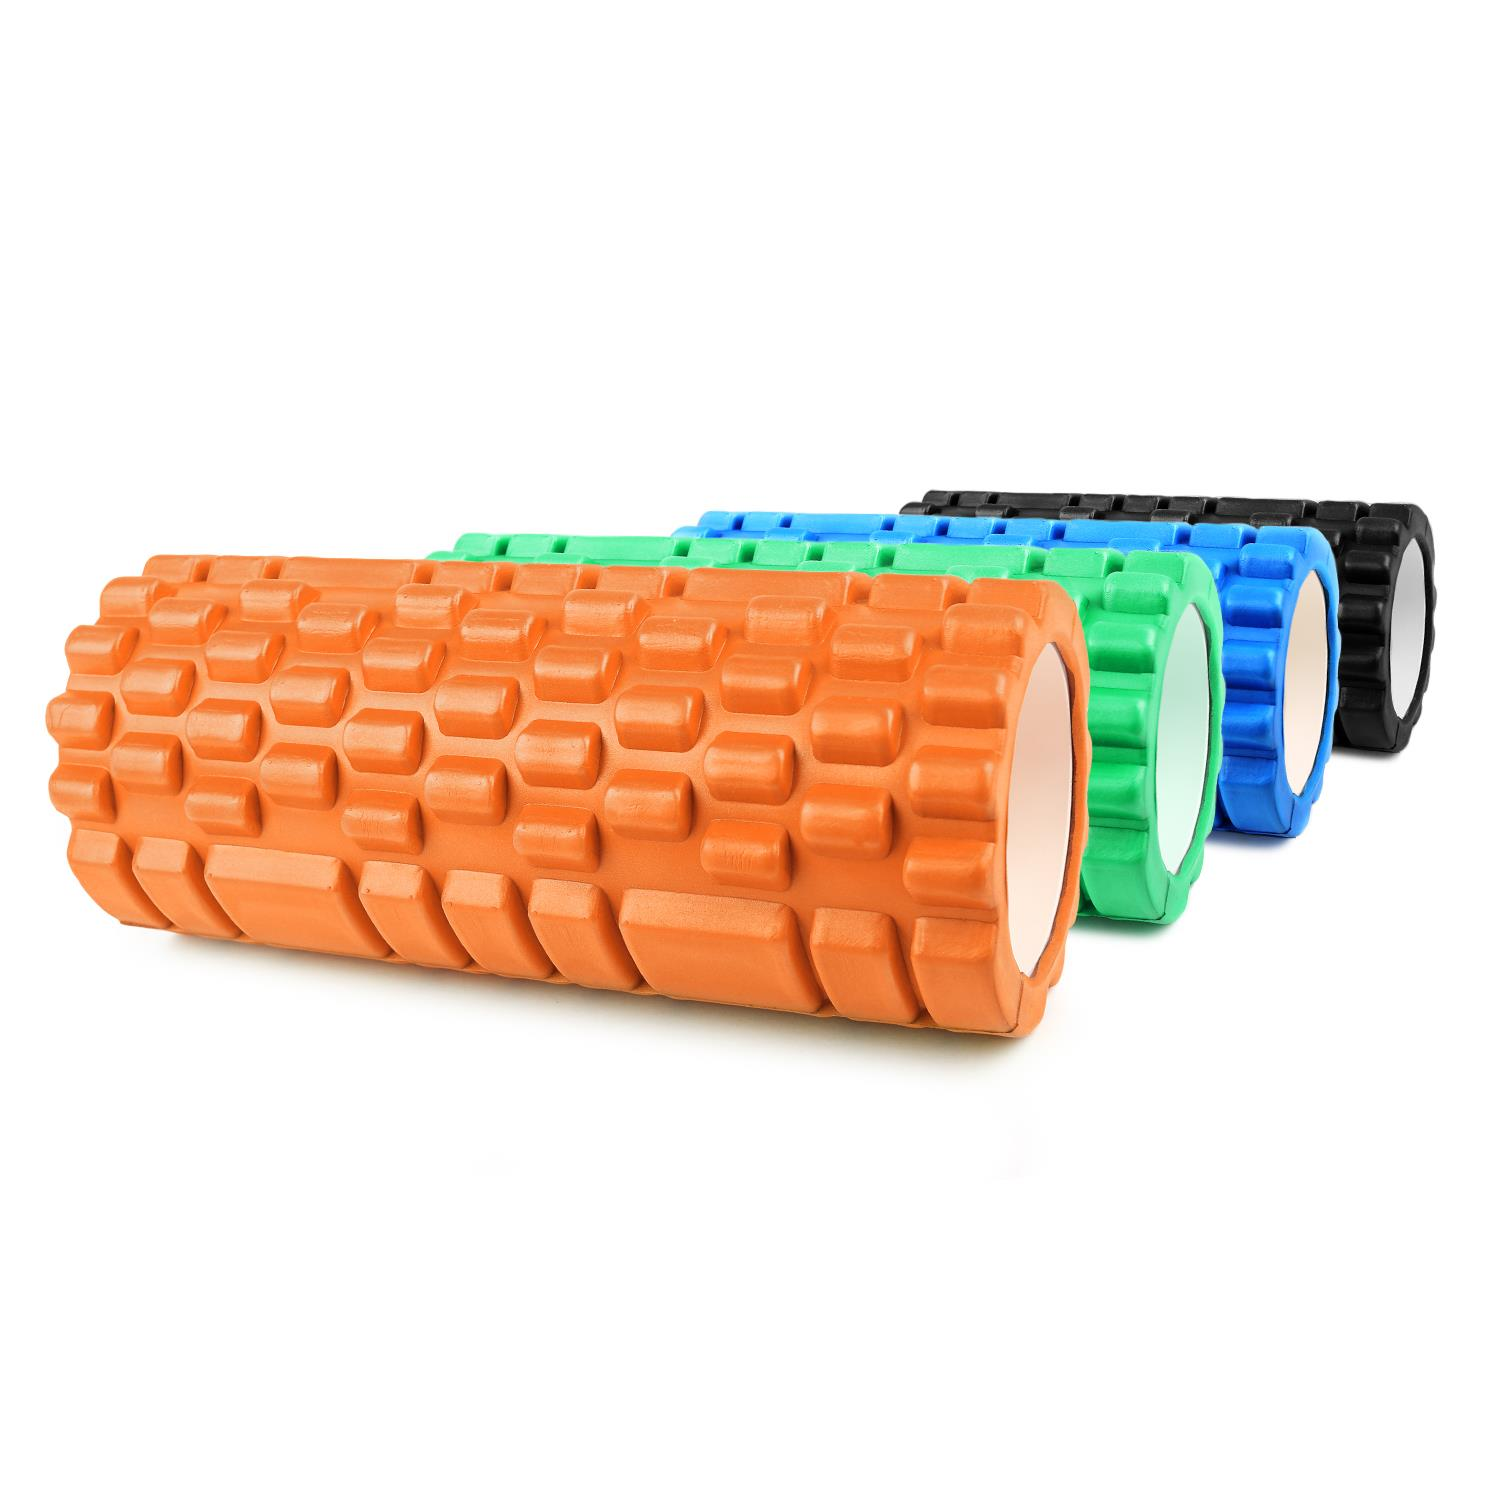 Rullo-Schiuma-Capital-Sport-Yoga-Pilates-Foam-Roller-Trigger-Point-Massaggio miniatura 2